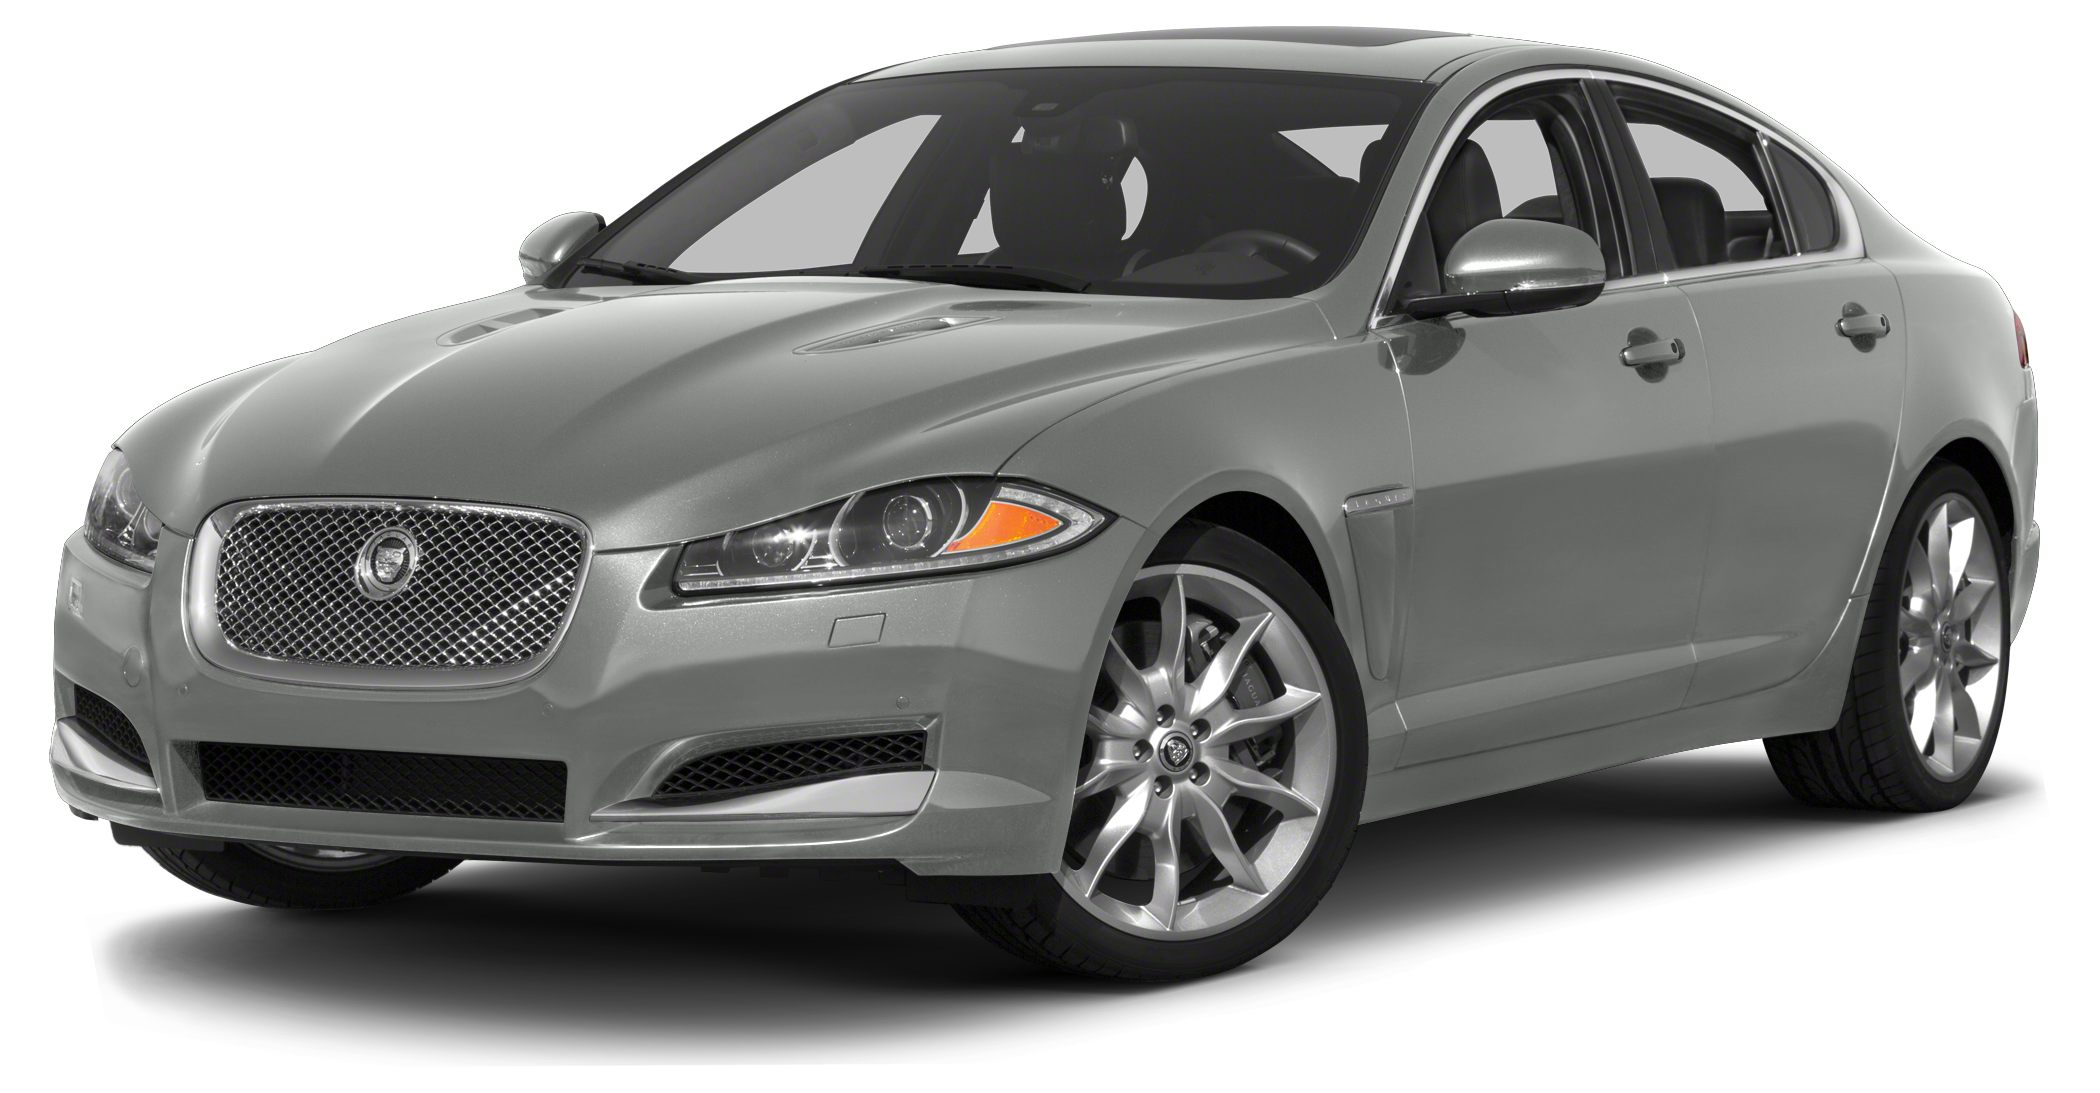 2013 Jaguar XF V6 SC This Jaguar is all about the luxury Navigation Leather interior and all the